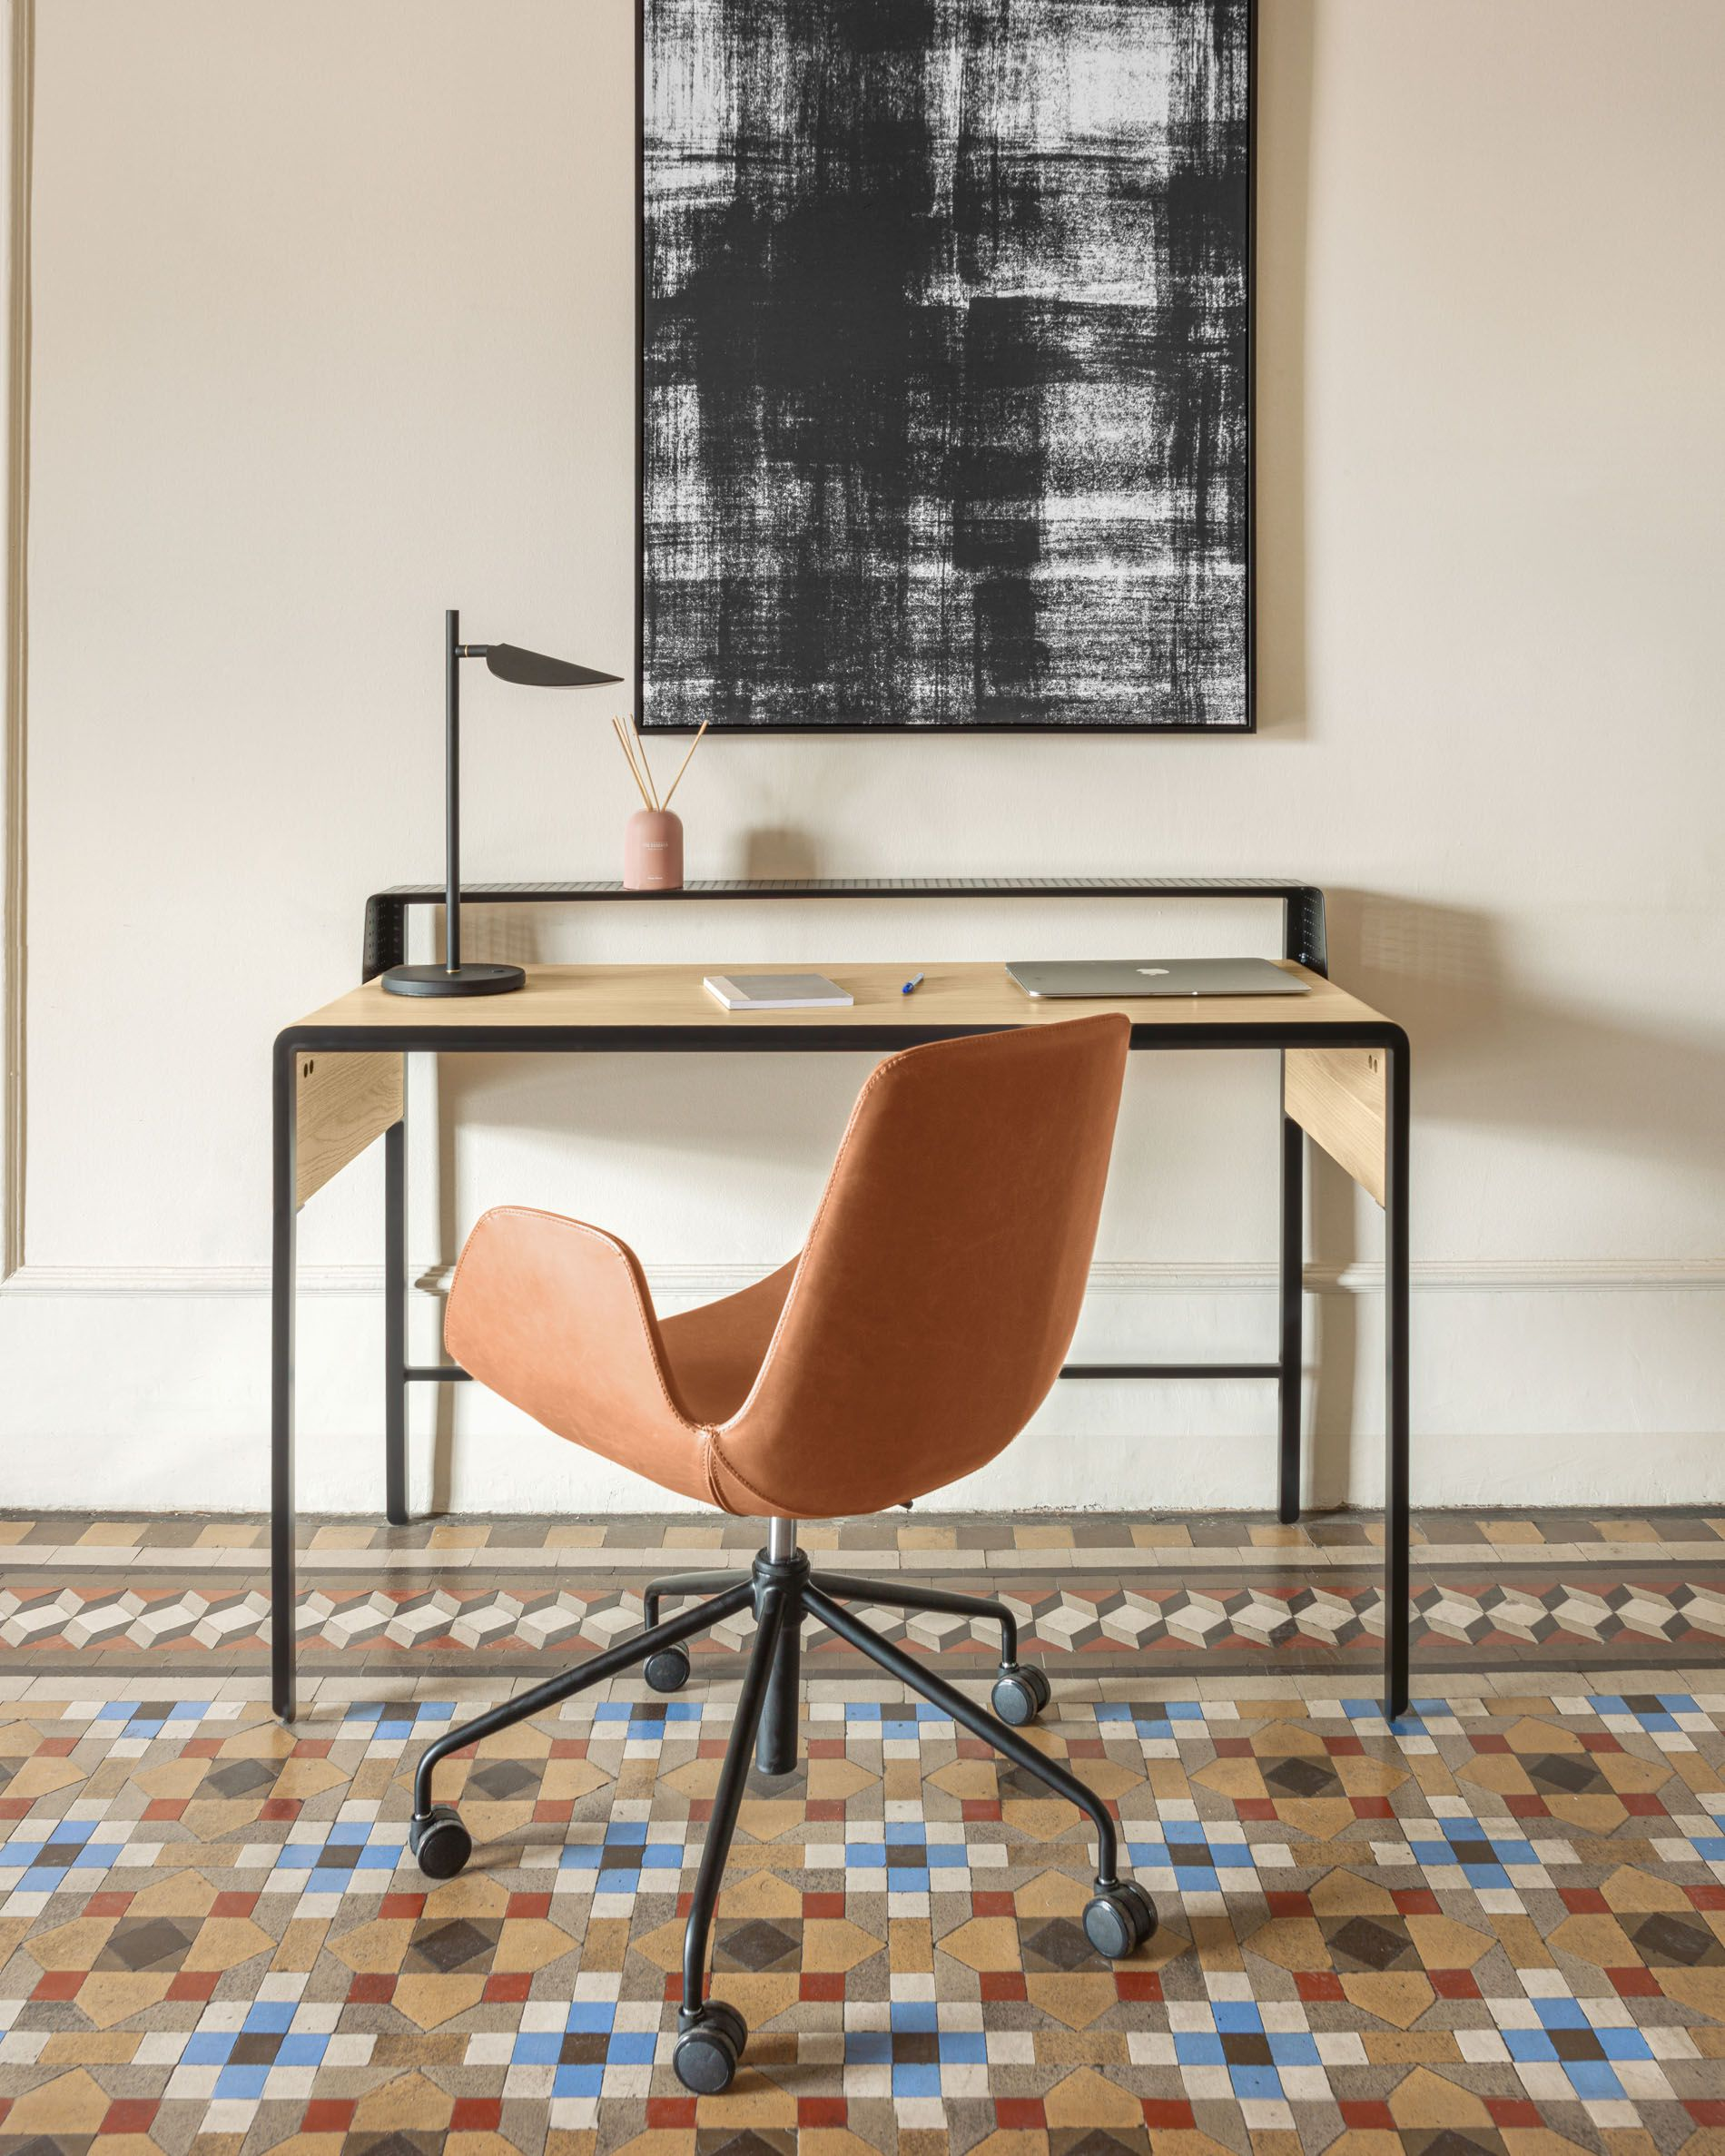 20 Modern Office Chairs For A Comfortable Home Office modern office chairs 20 Modern Office Chairs For A Comfortable Home Office 20 Modern Office Chairs For A Comfortable Home Office 10